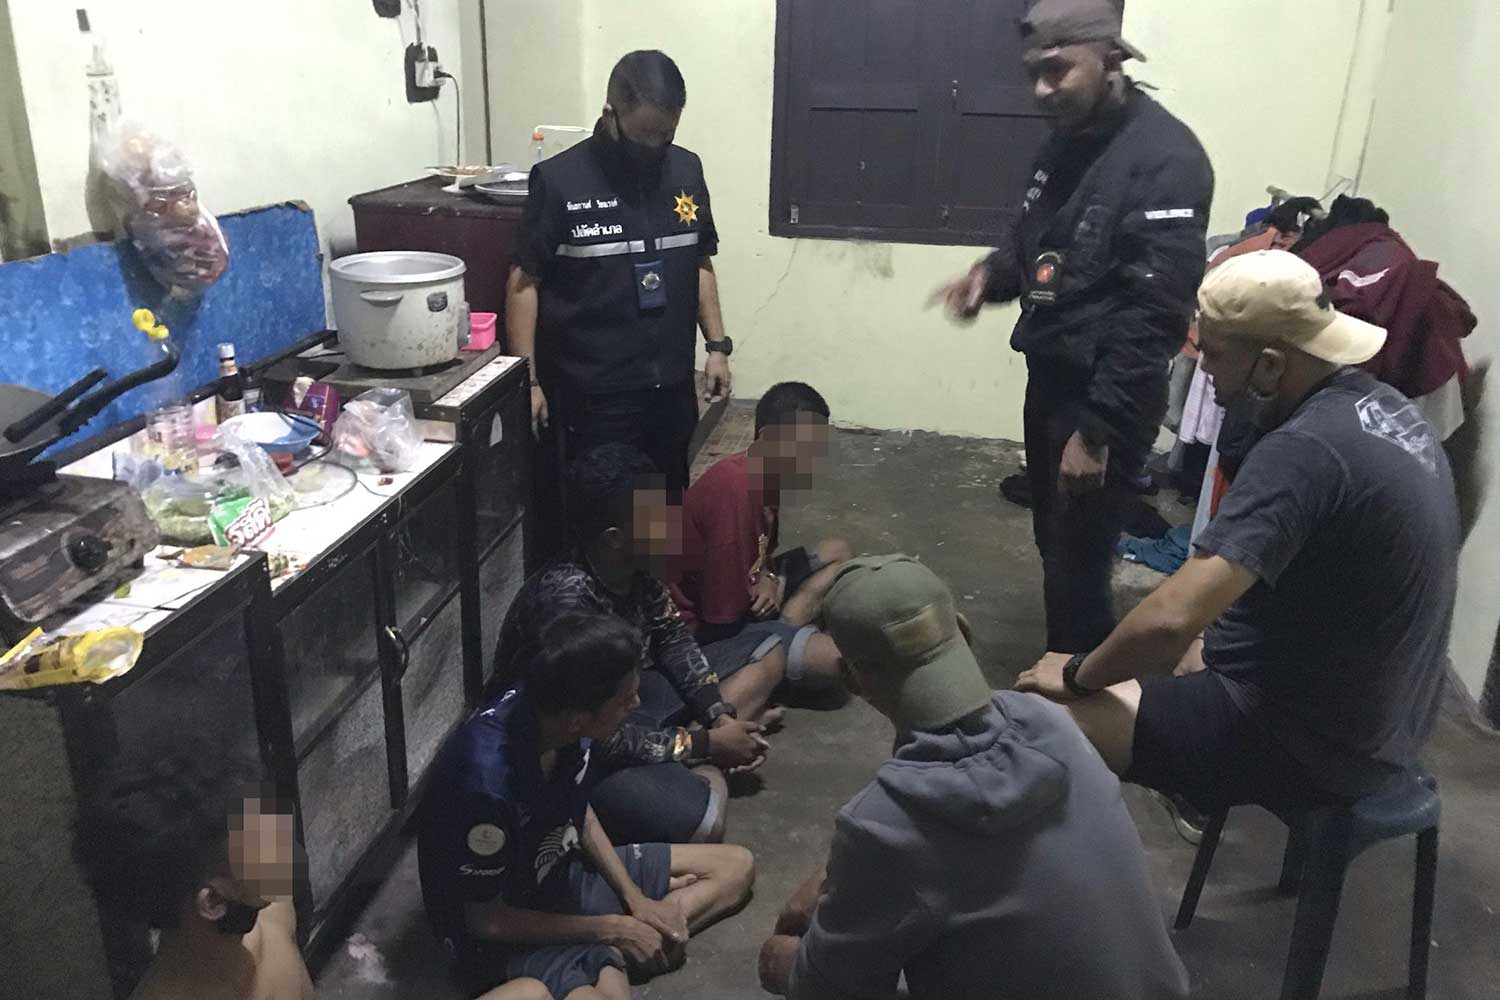 Local officials question some of the young people arrested during the raid on a house in Songkhla's Hat Yai district being used for taking drugs and partying on Monday night. (Photo: Assawin Pakkawan)